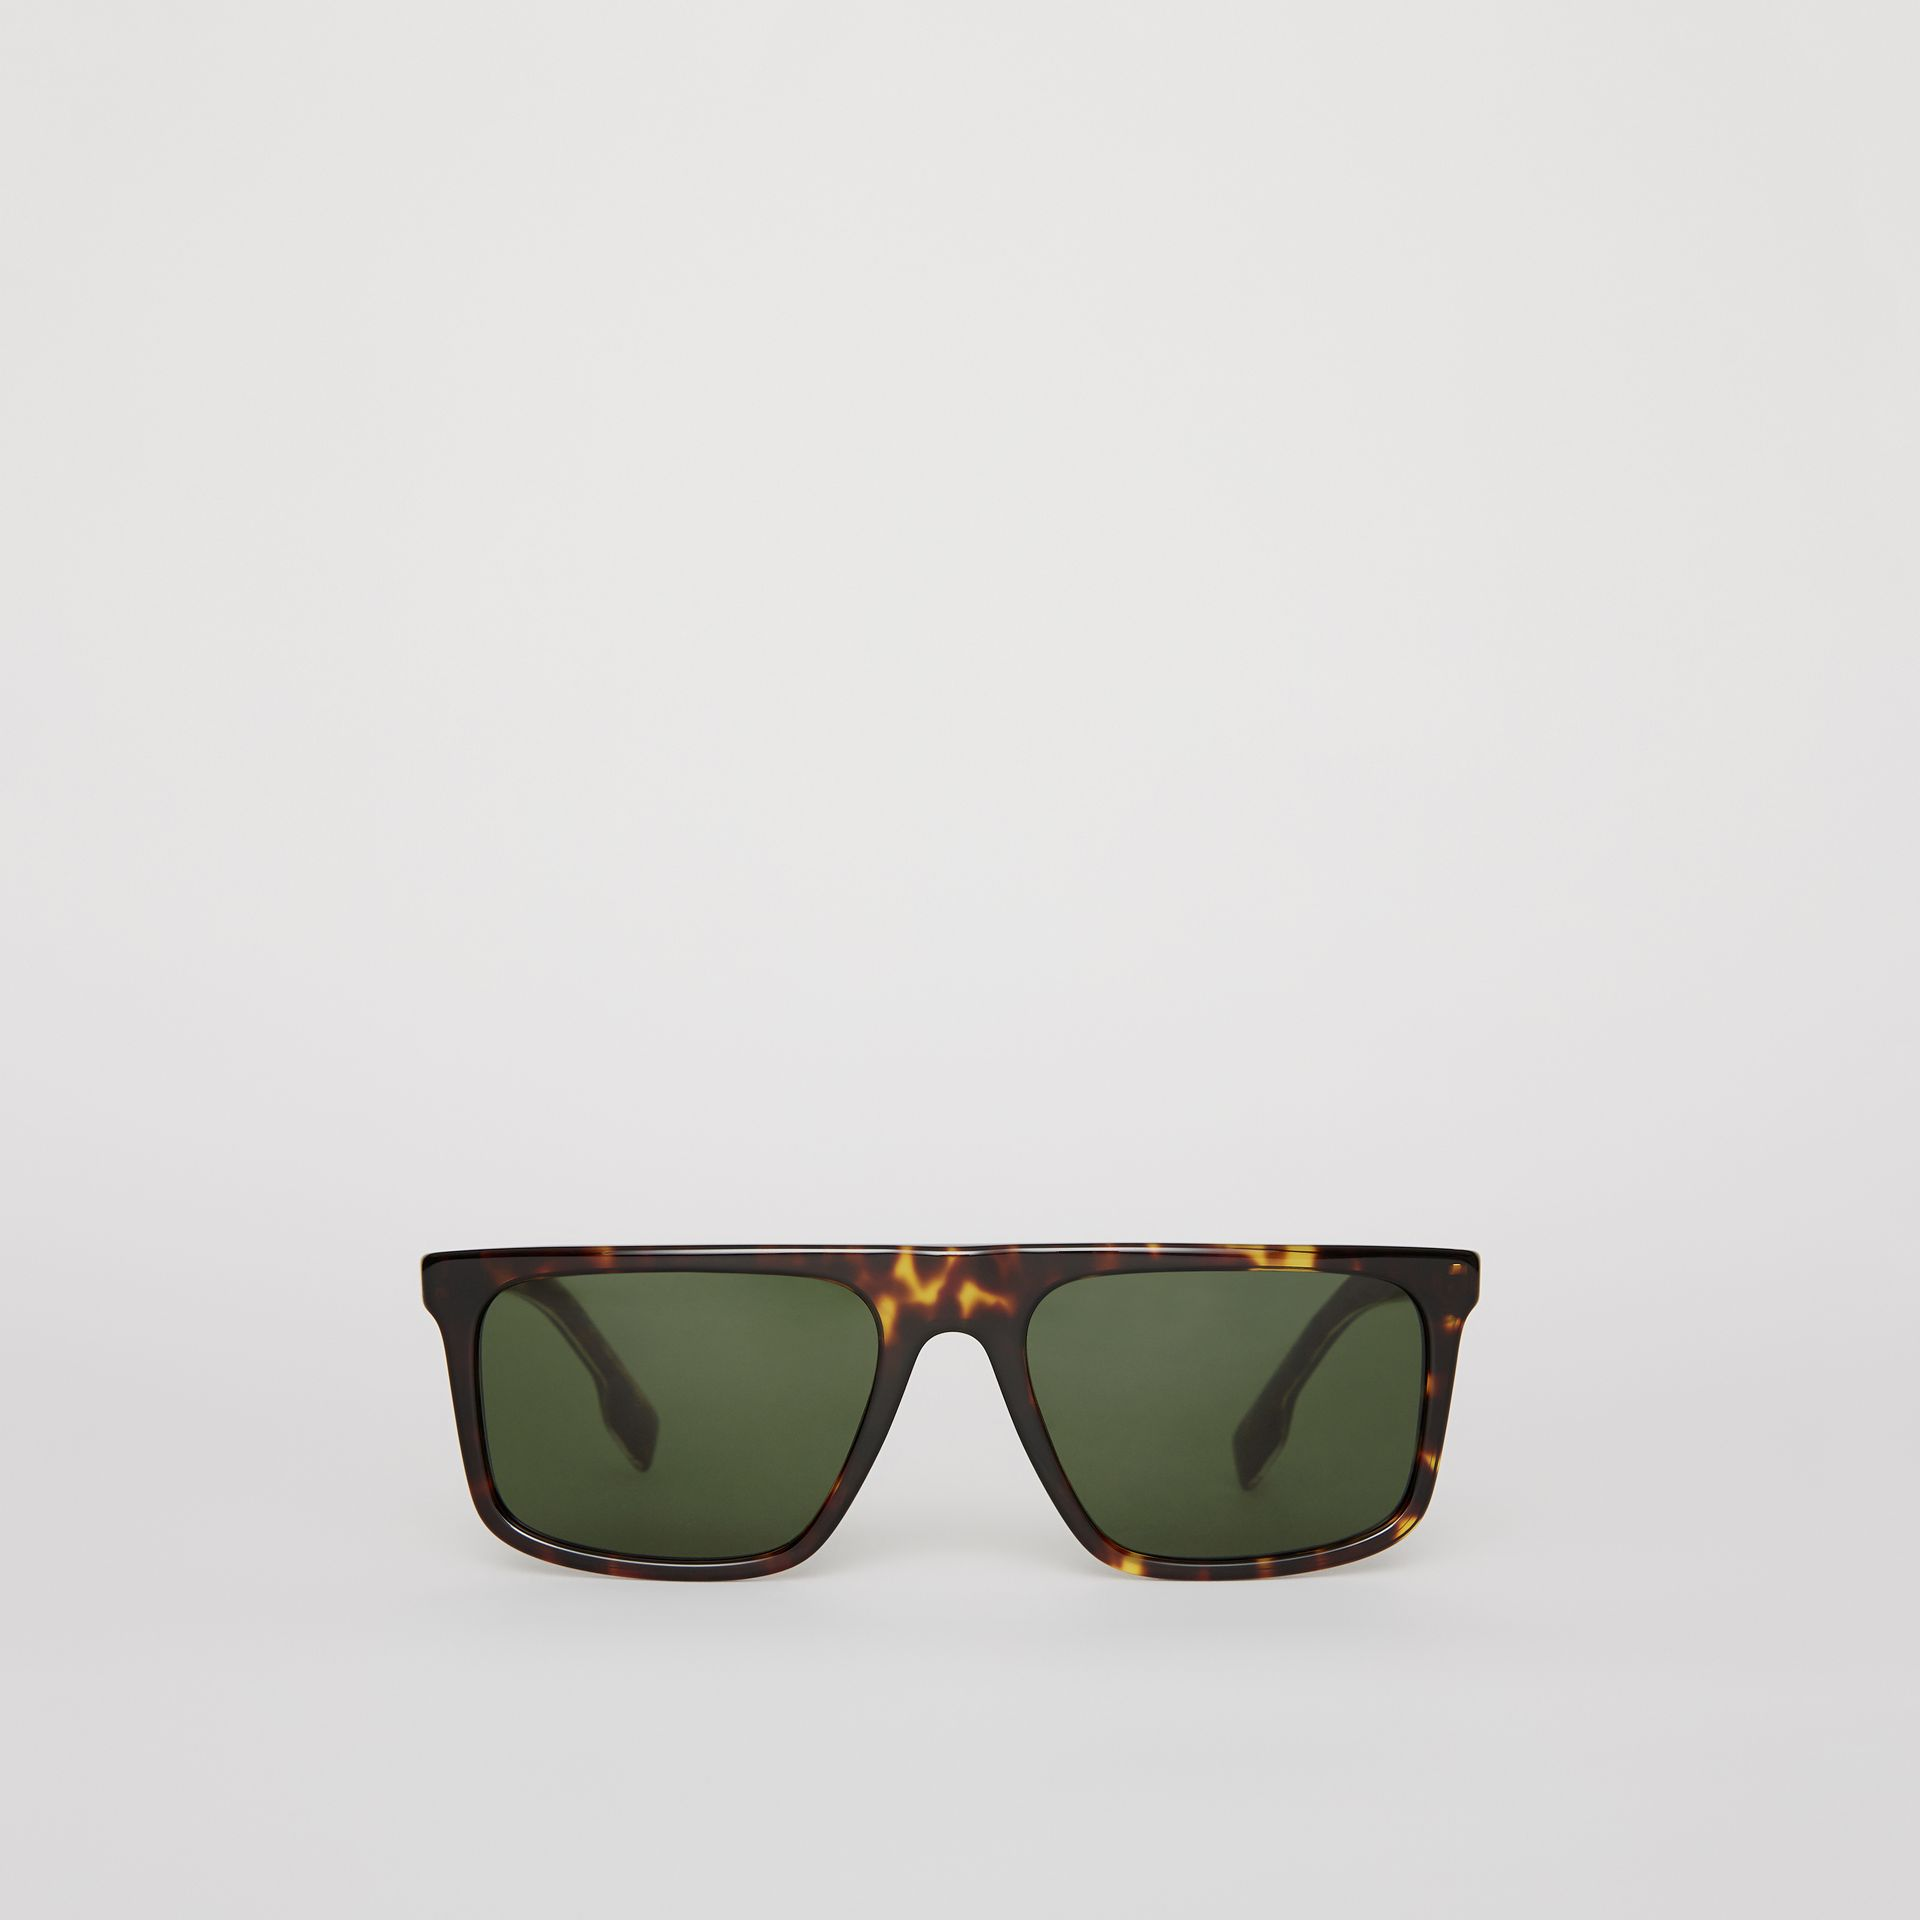 Straight-brow Sunglasses in Tortoise Shell - Men | Burberry United States - gallery image 0